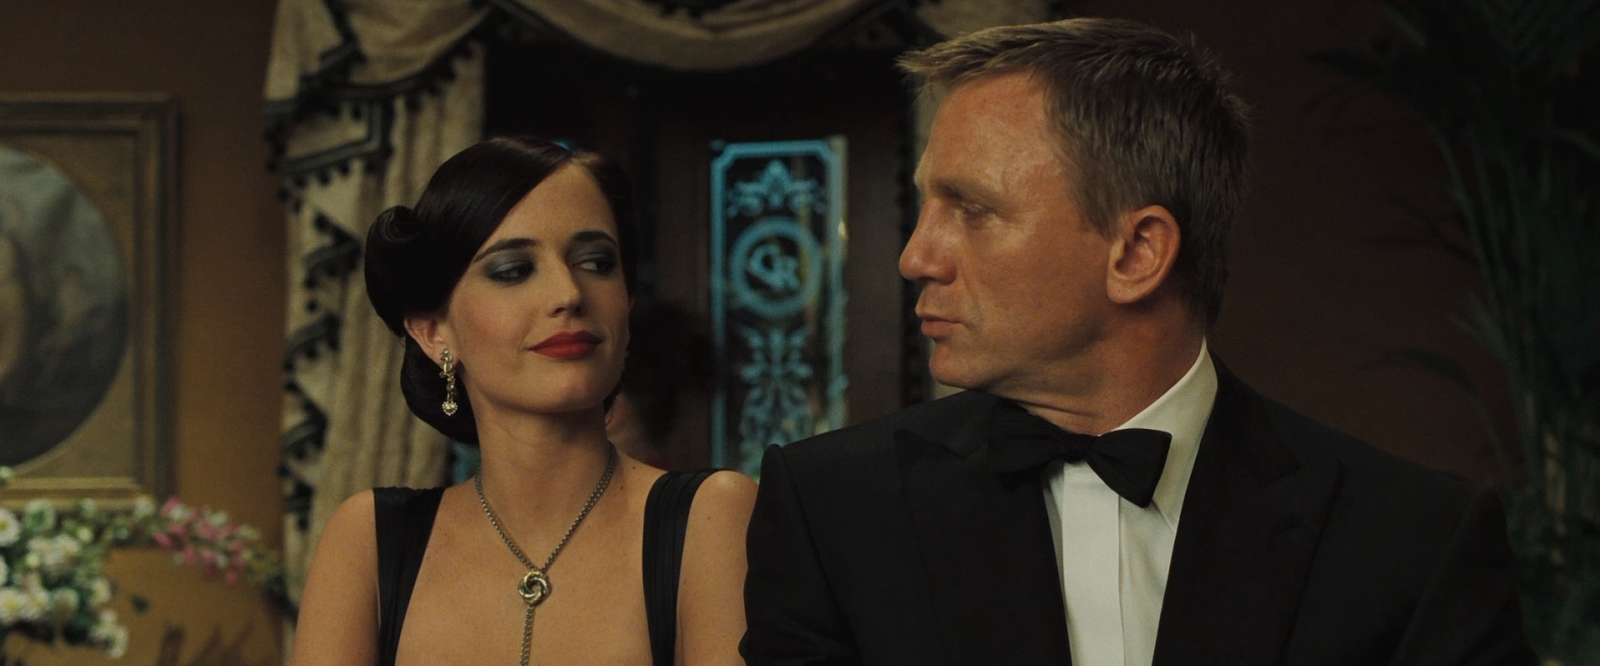 james bond casino royale stream hd filme